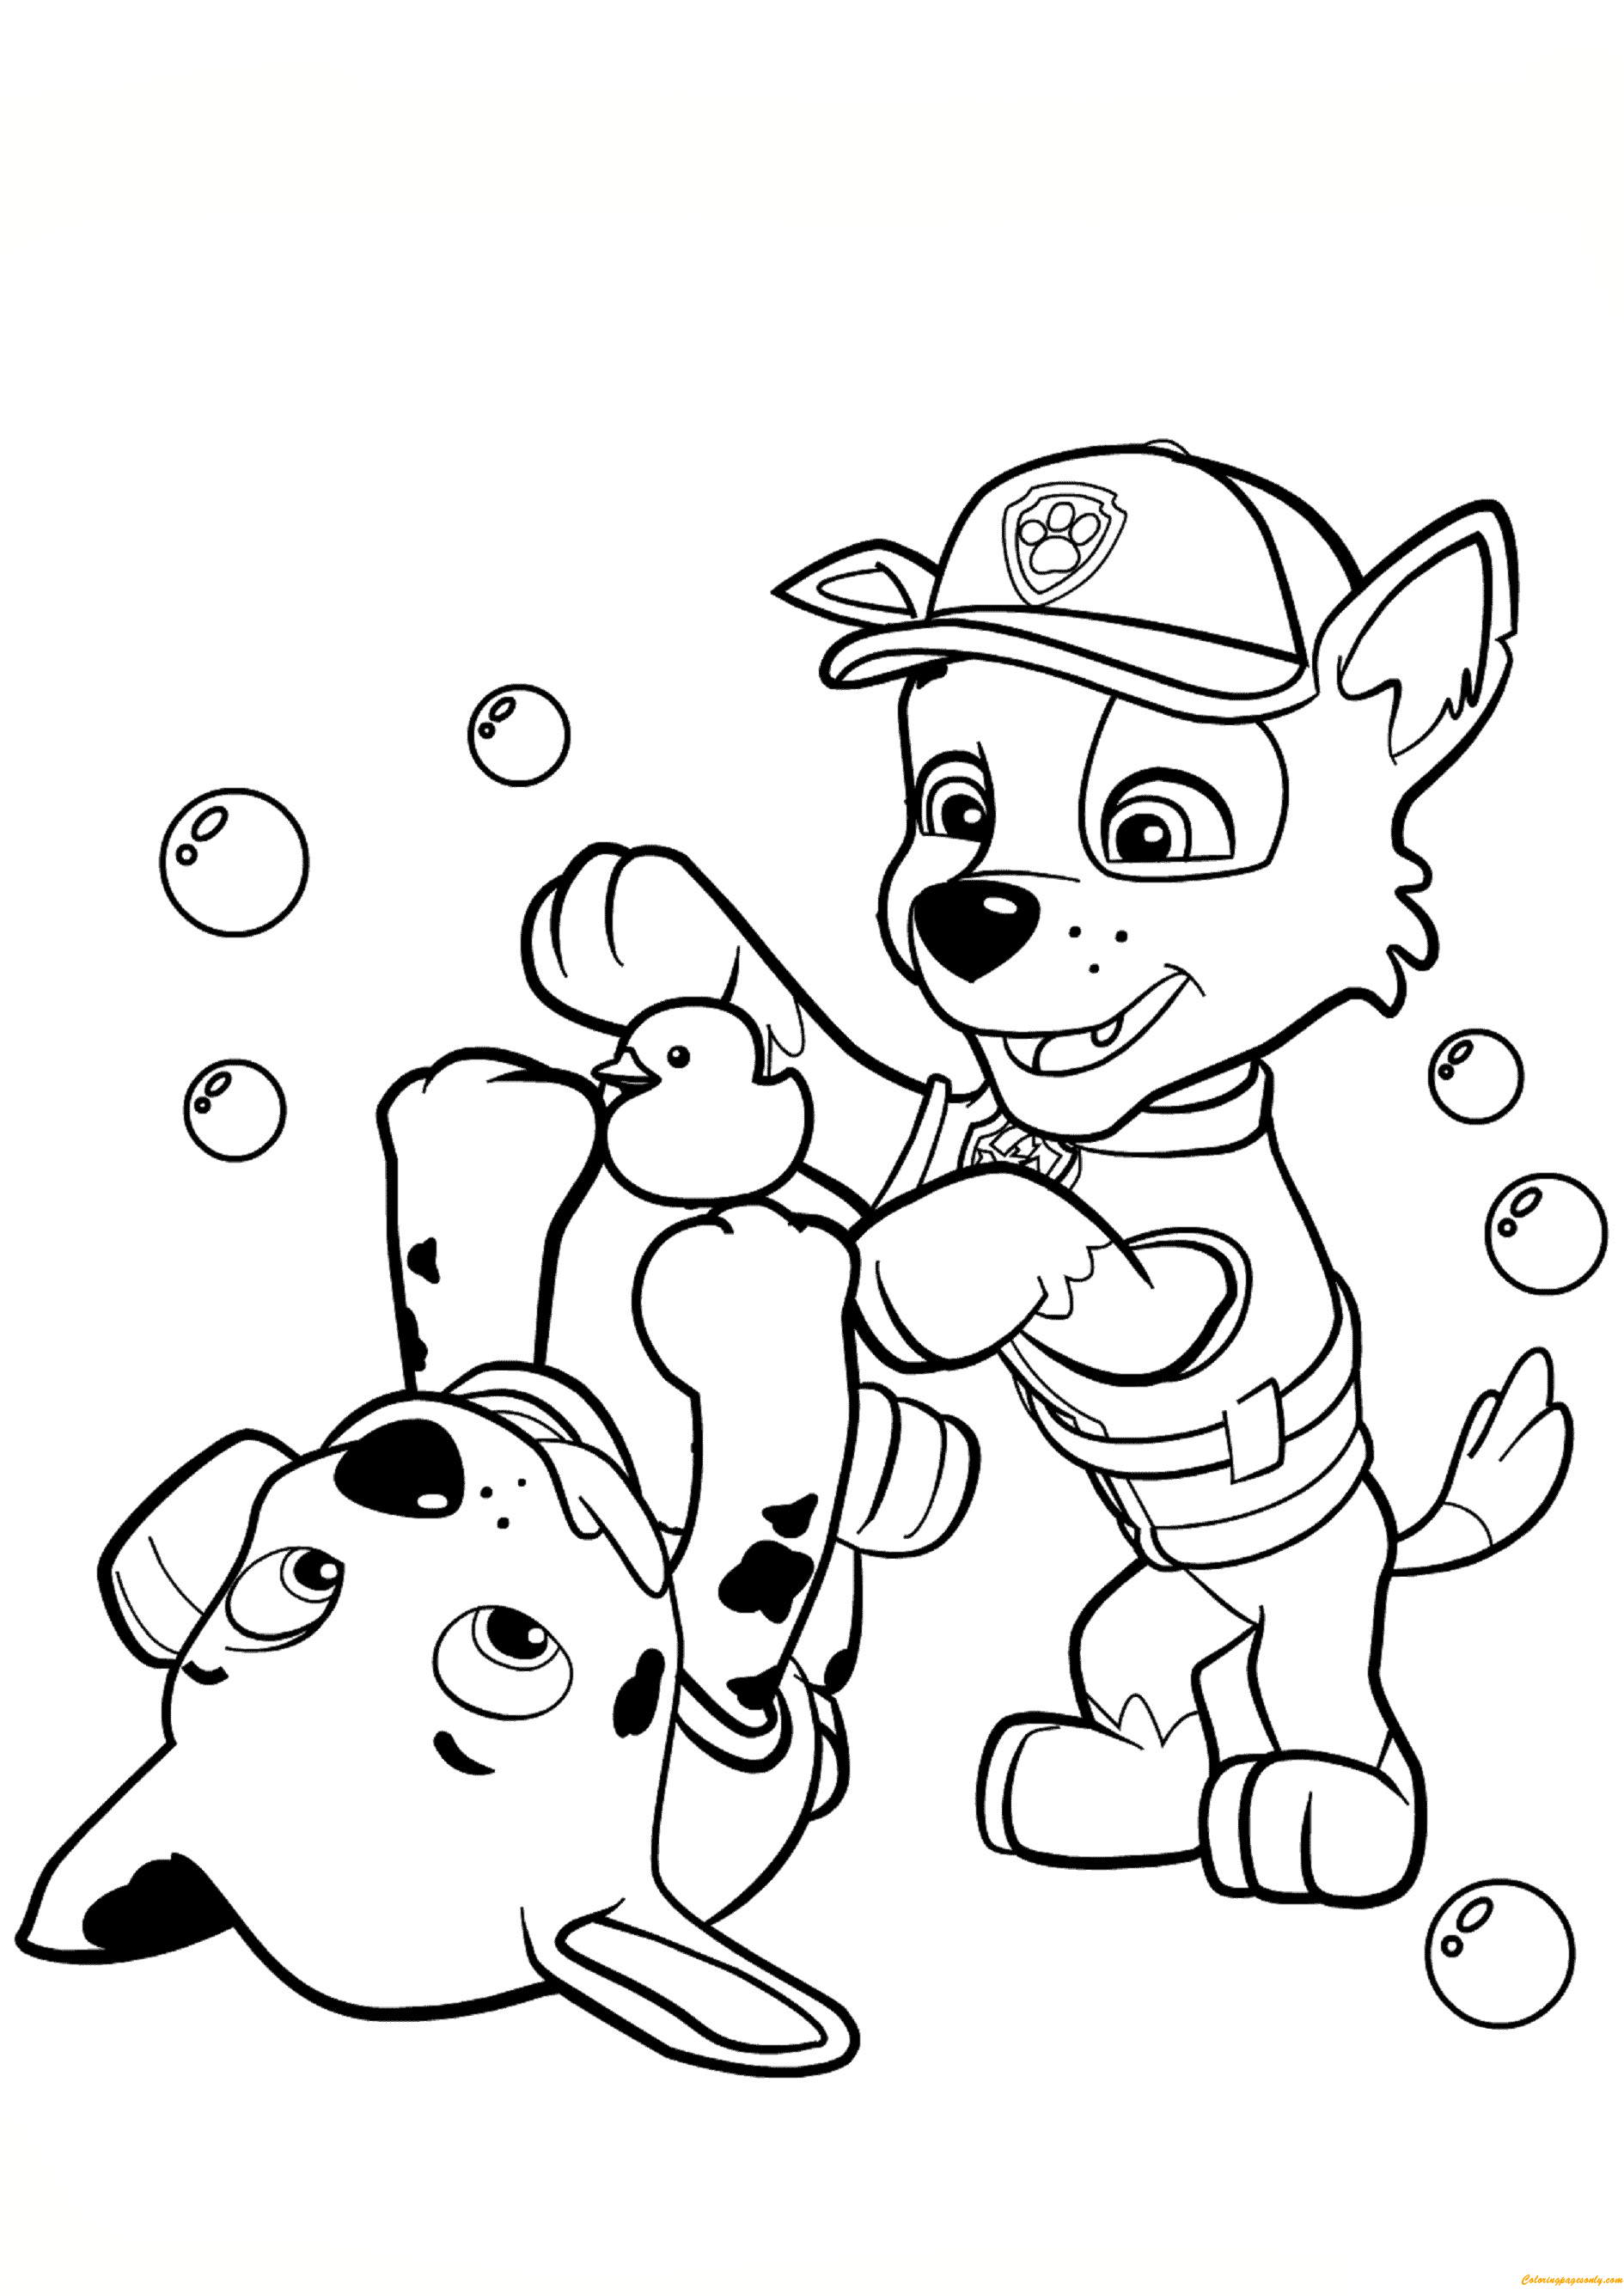 Paw Patrol Rocky And Marshall Coloring Page - Free ...